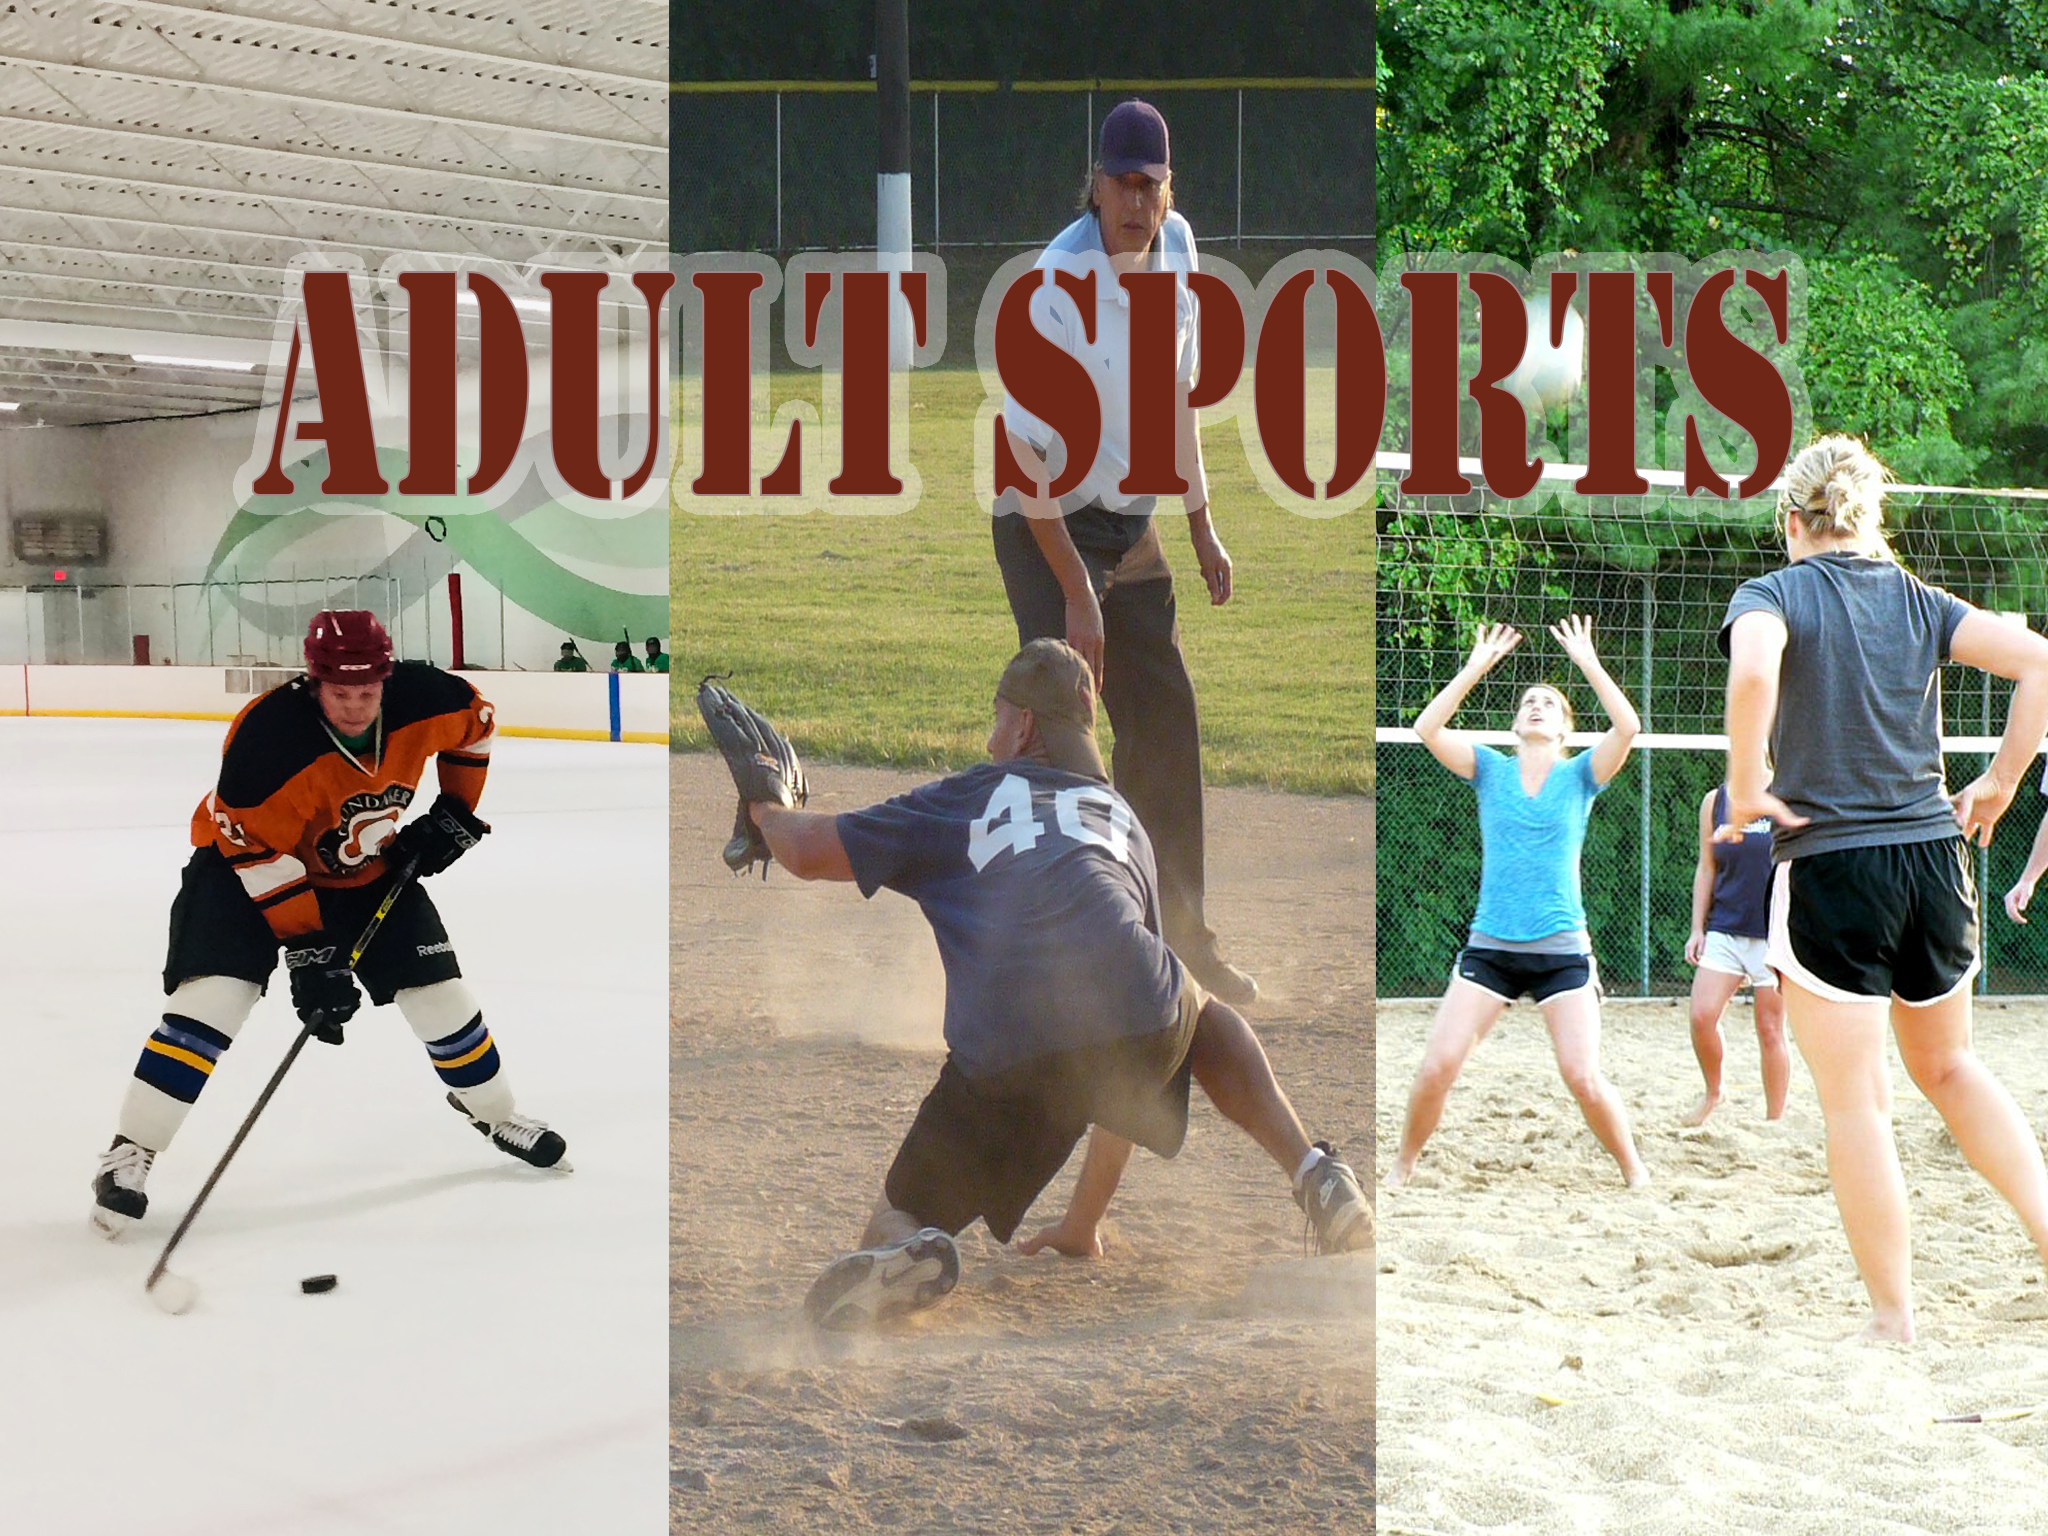 AdultSportsGraphic